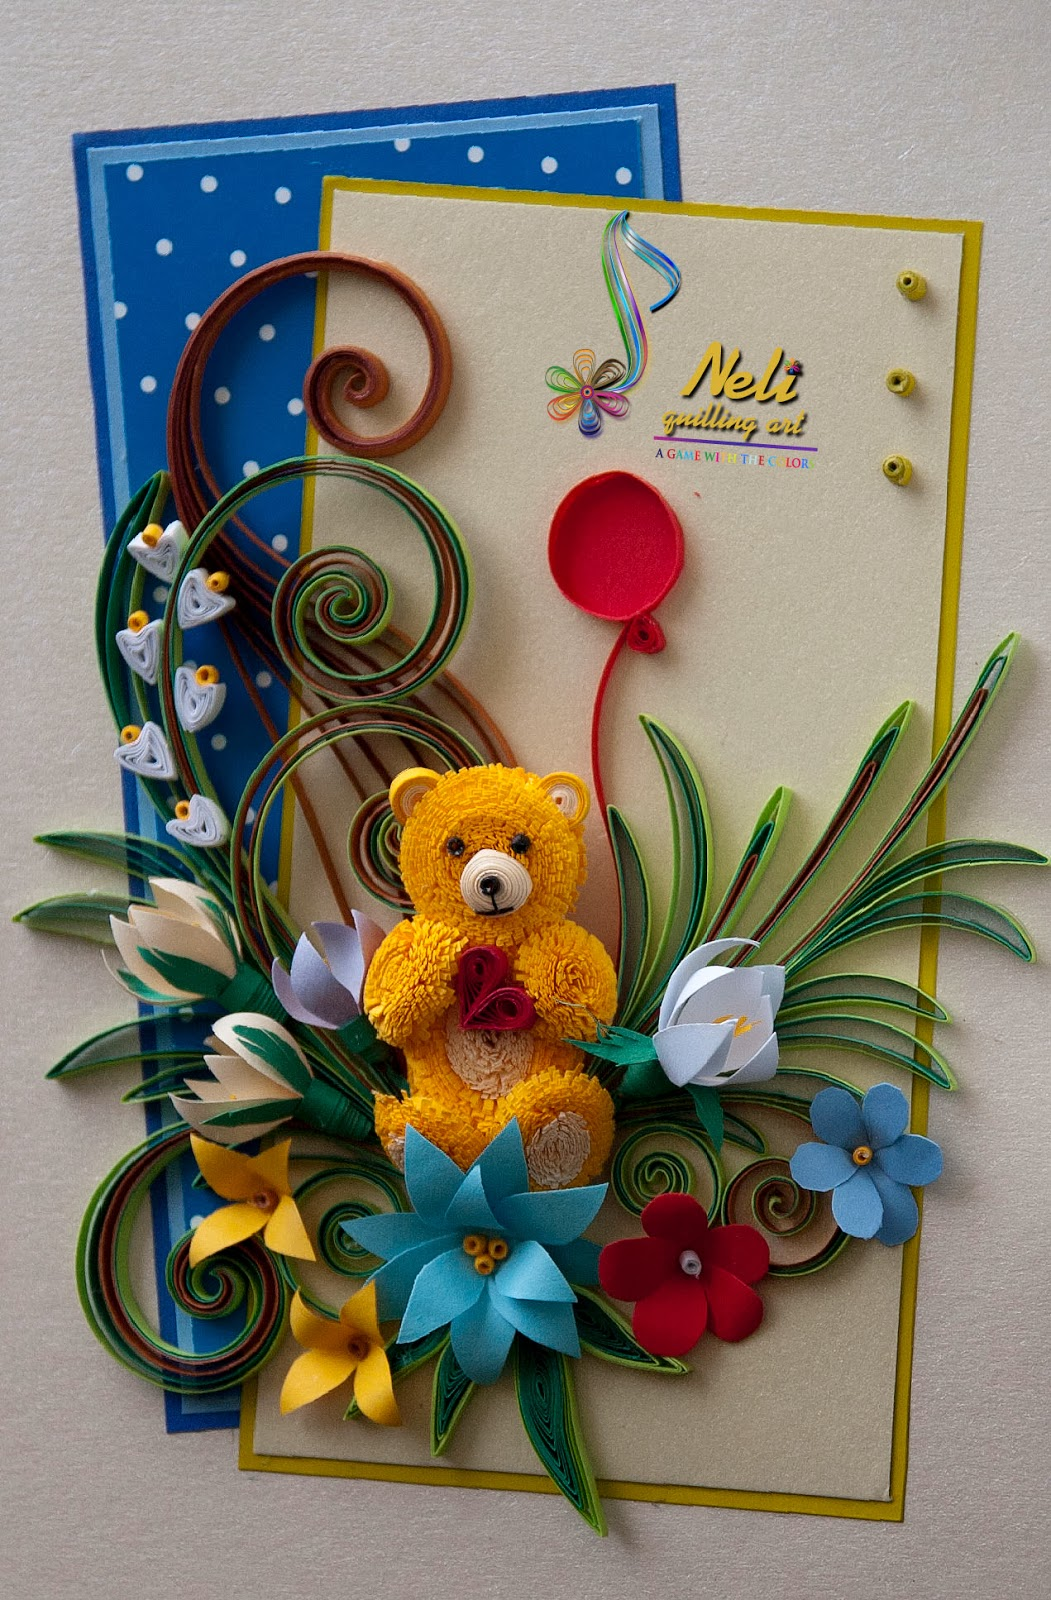 Australian Made Teddy Bears Neli Quilling Art Quilling Card And Teddy Bear